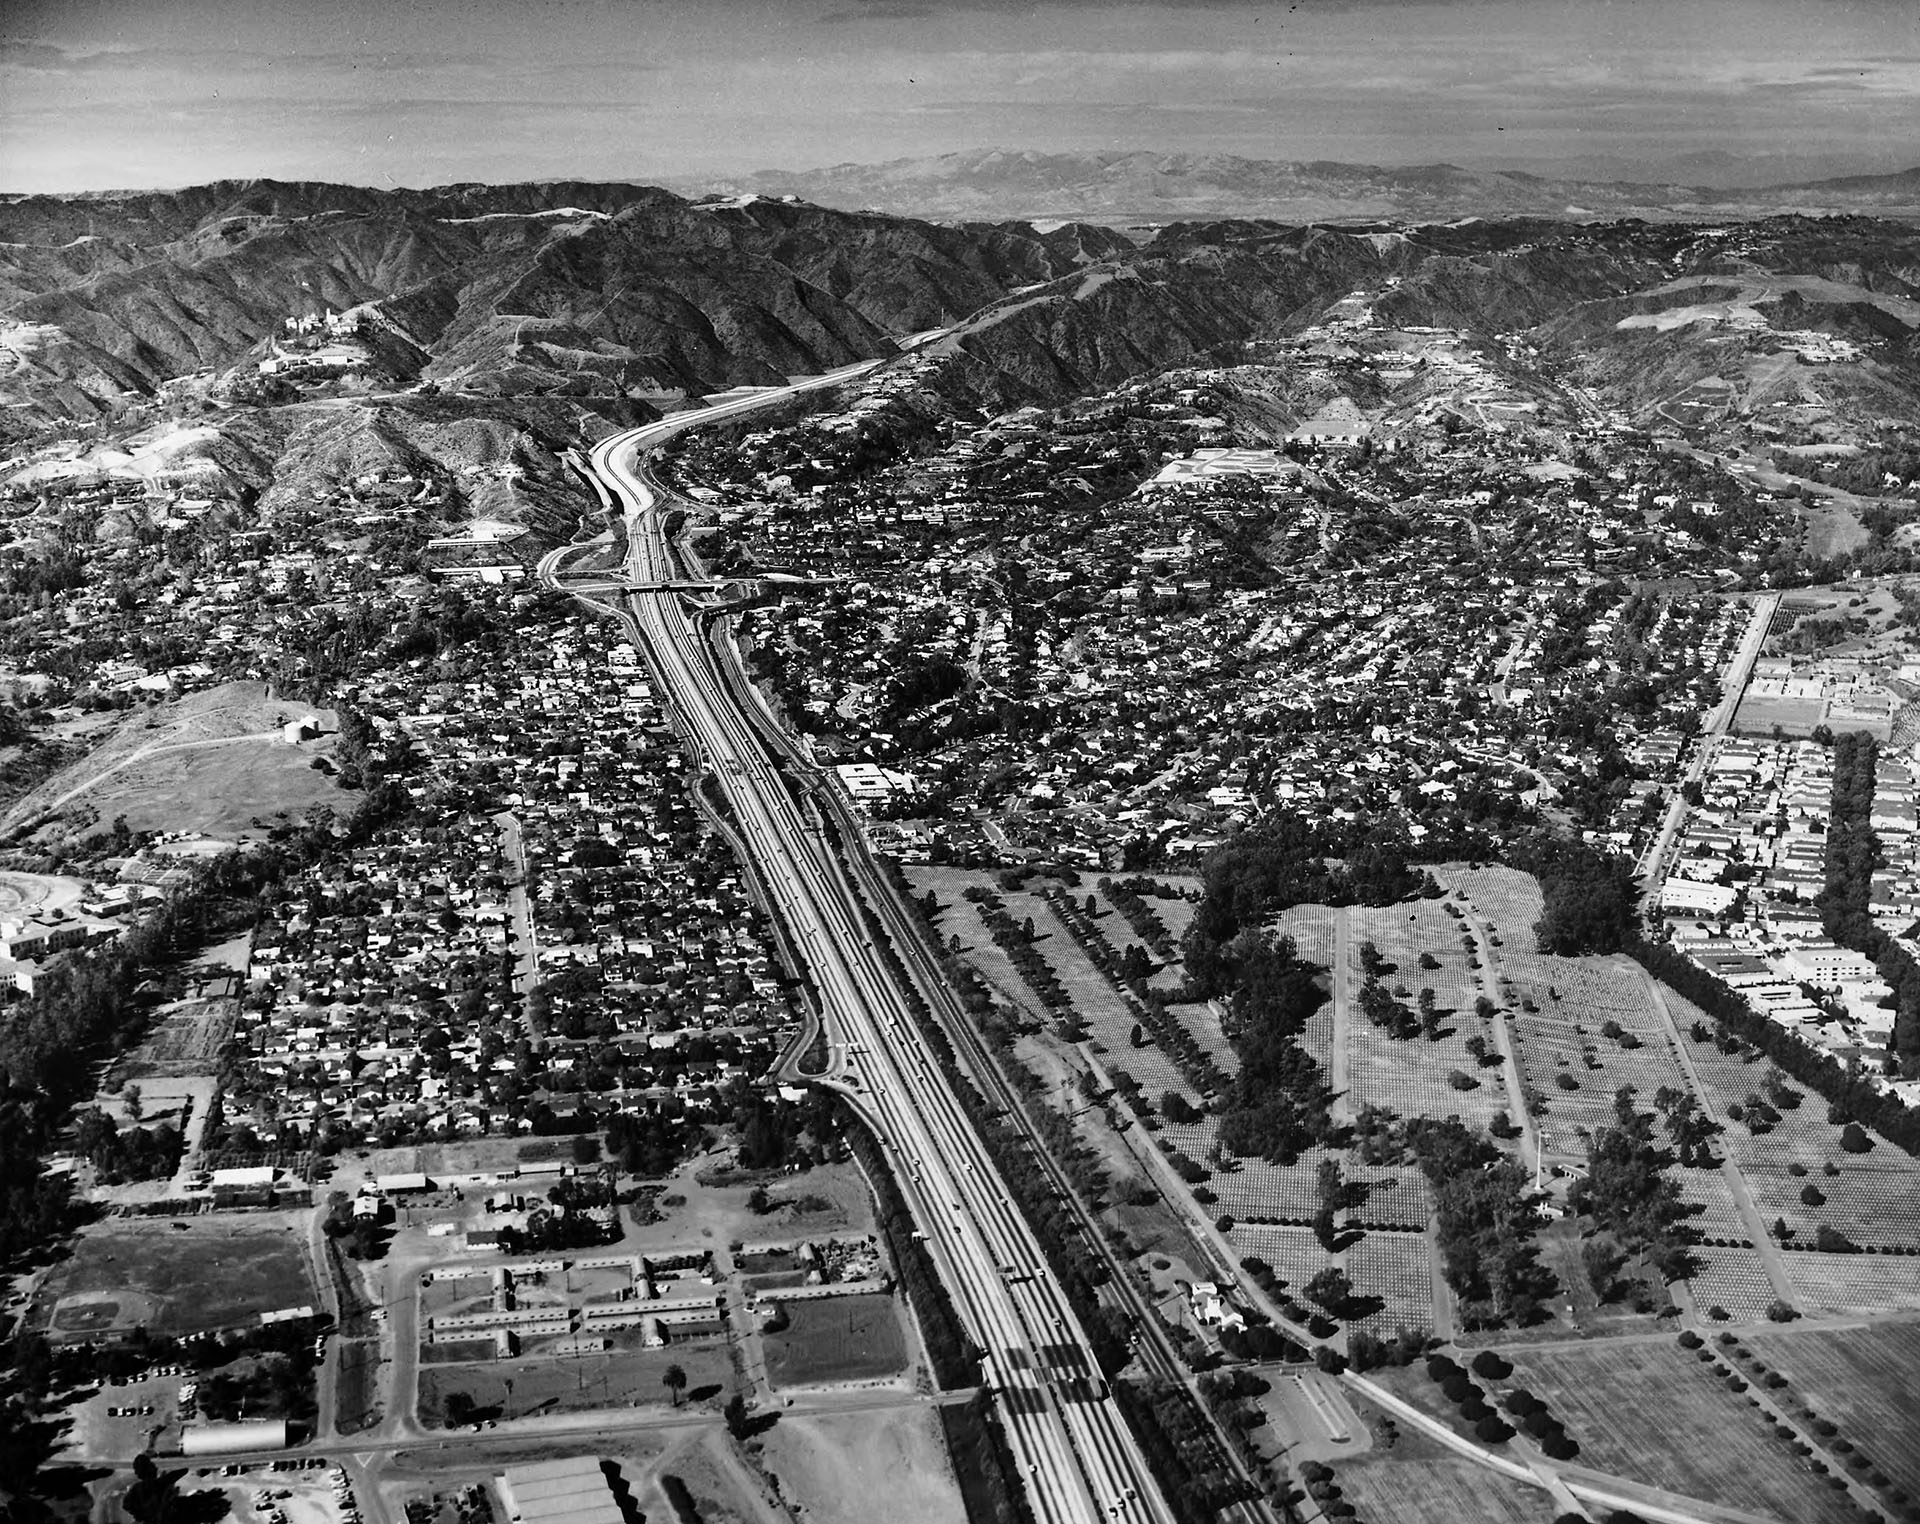 1962 aerial view of the San Diego (I-405) Freeway emerging from the Sepulveda Pass